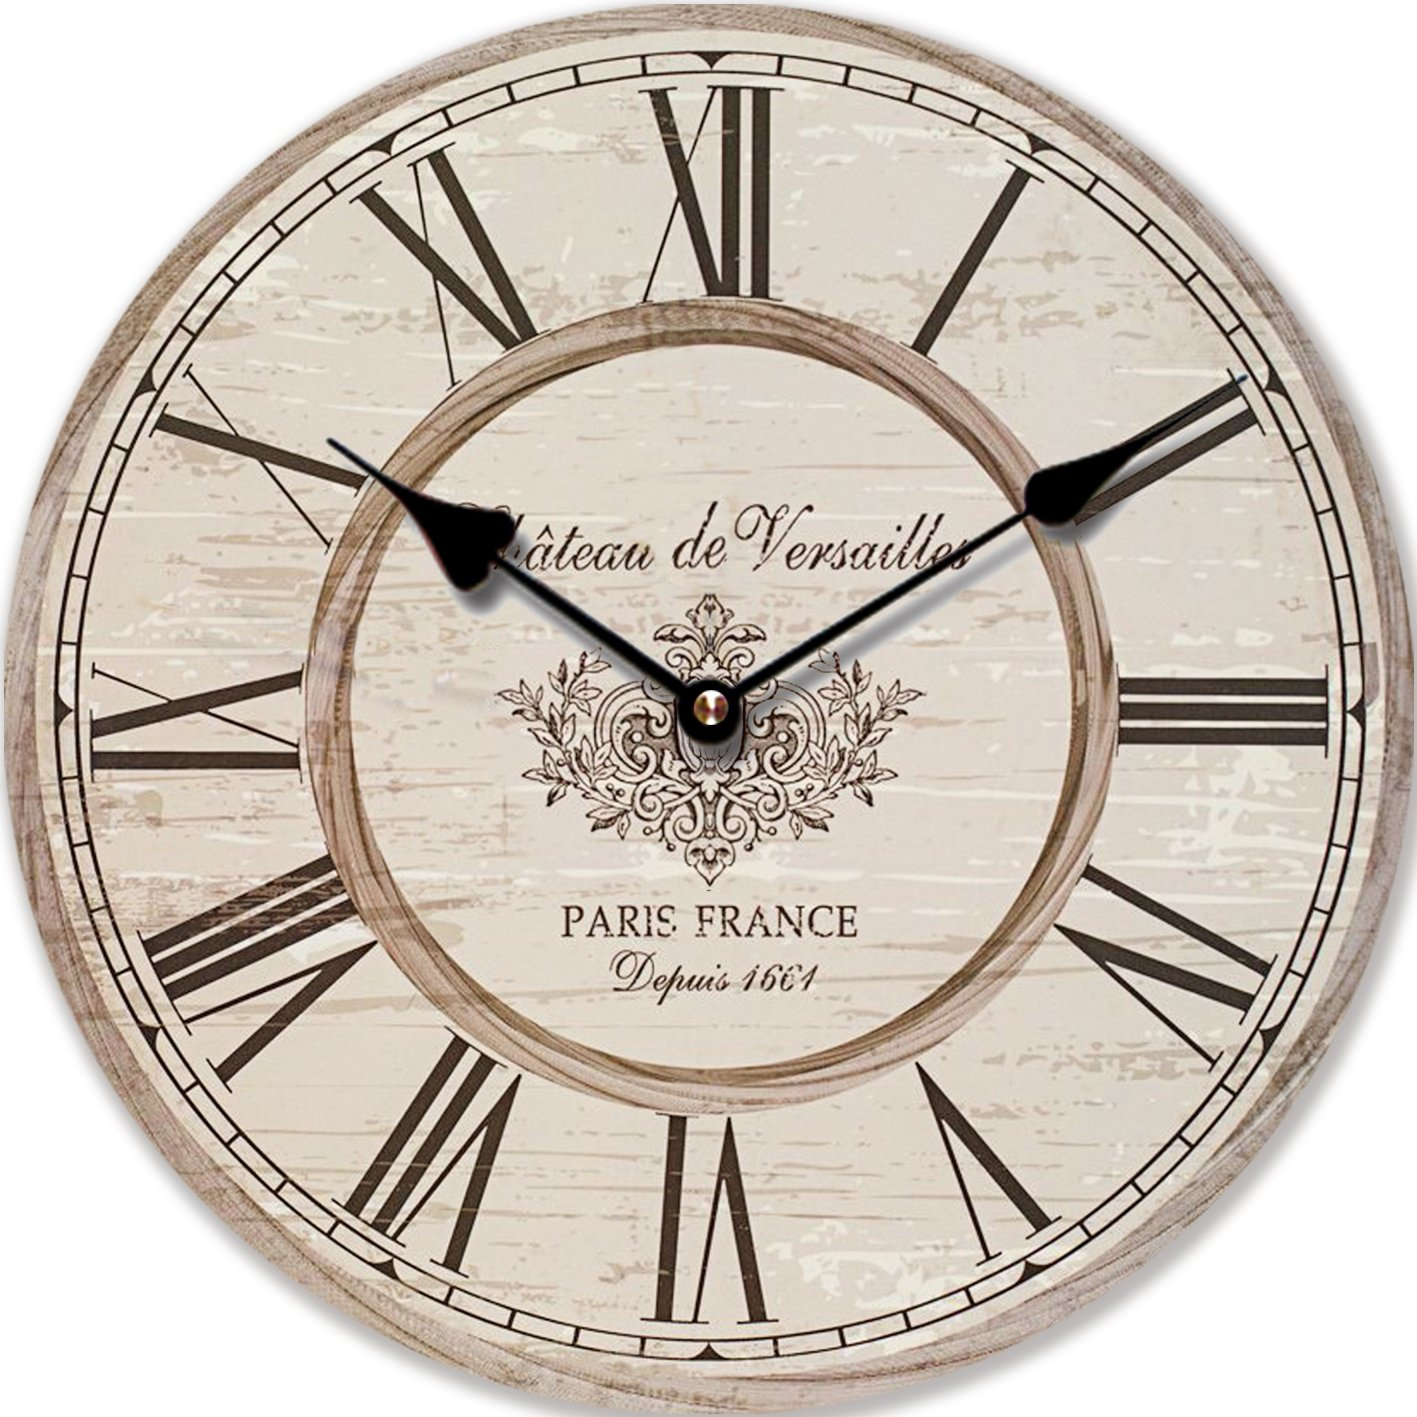 maison du monde horloge murale elegant horloge immigoo vintage d horloge murale cm clock r uua. Black Bedroom Furniture Sets. Home Design Ideas